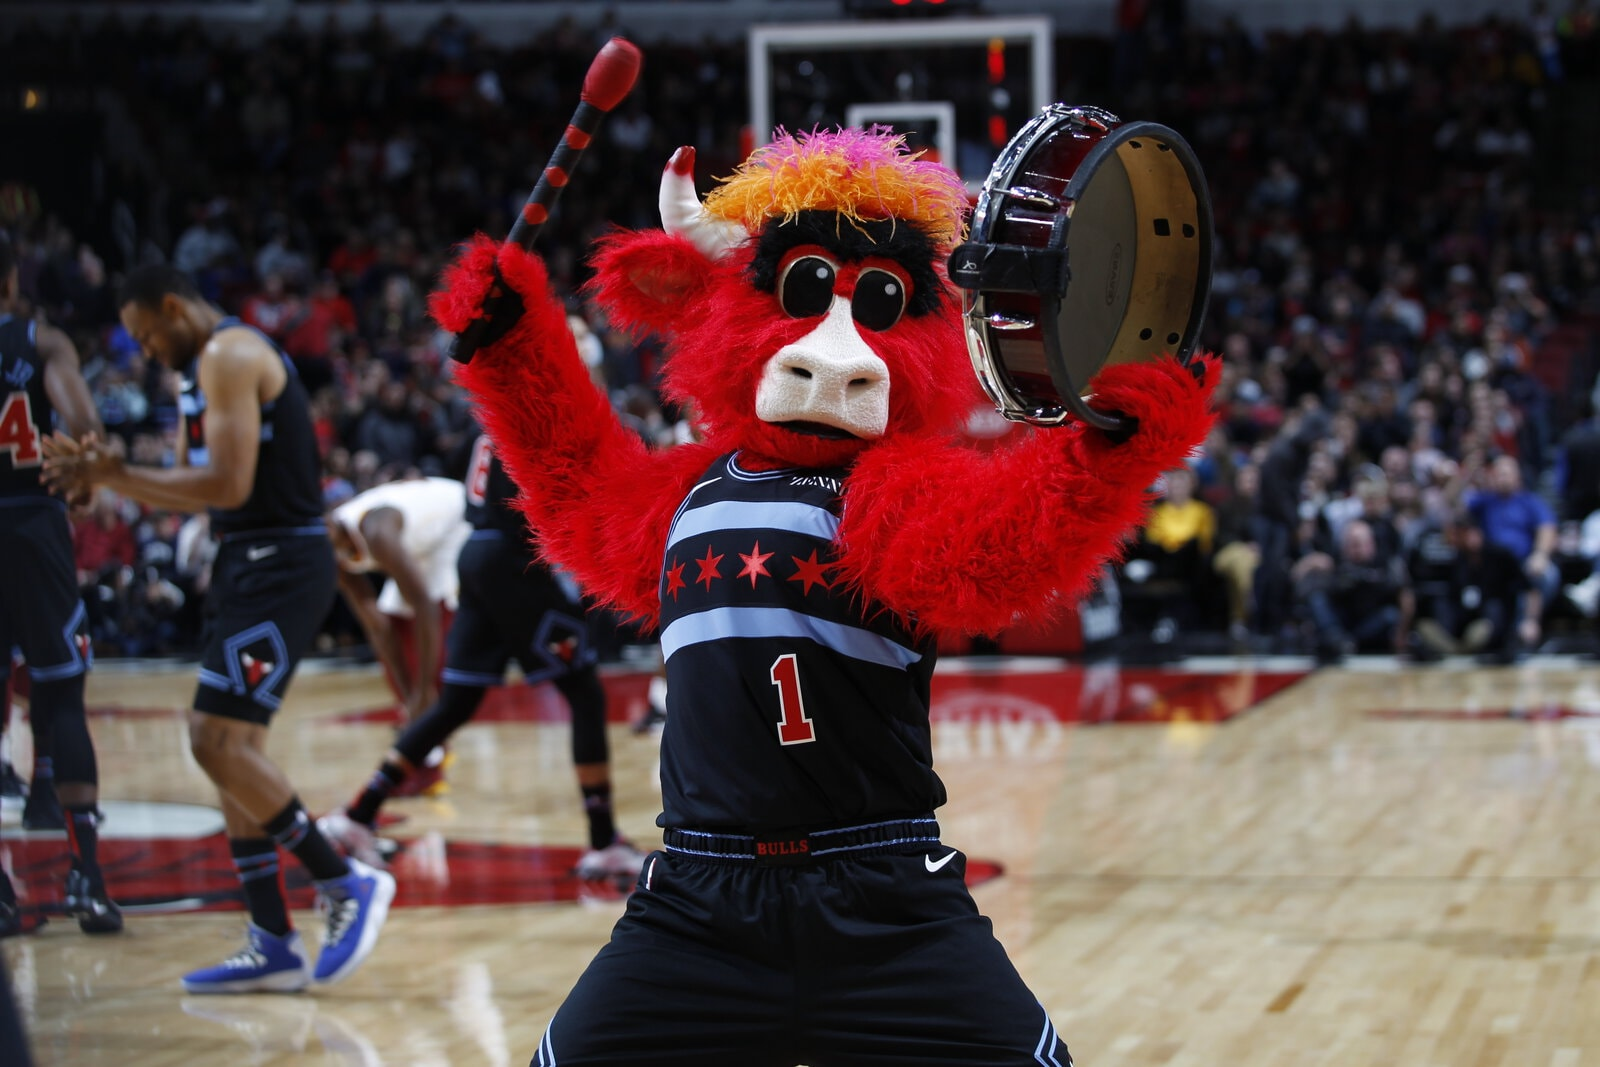 Benny plays a drum to start the game